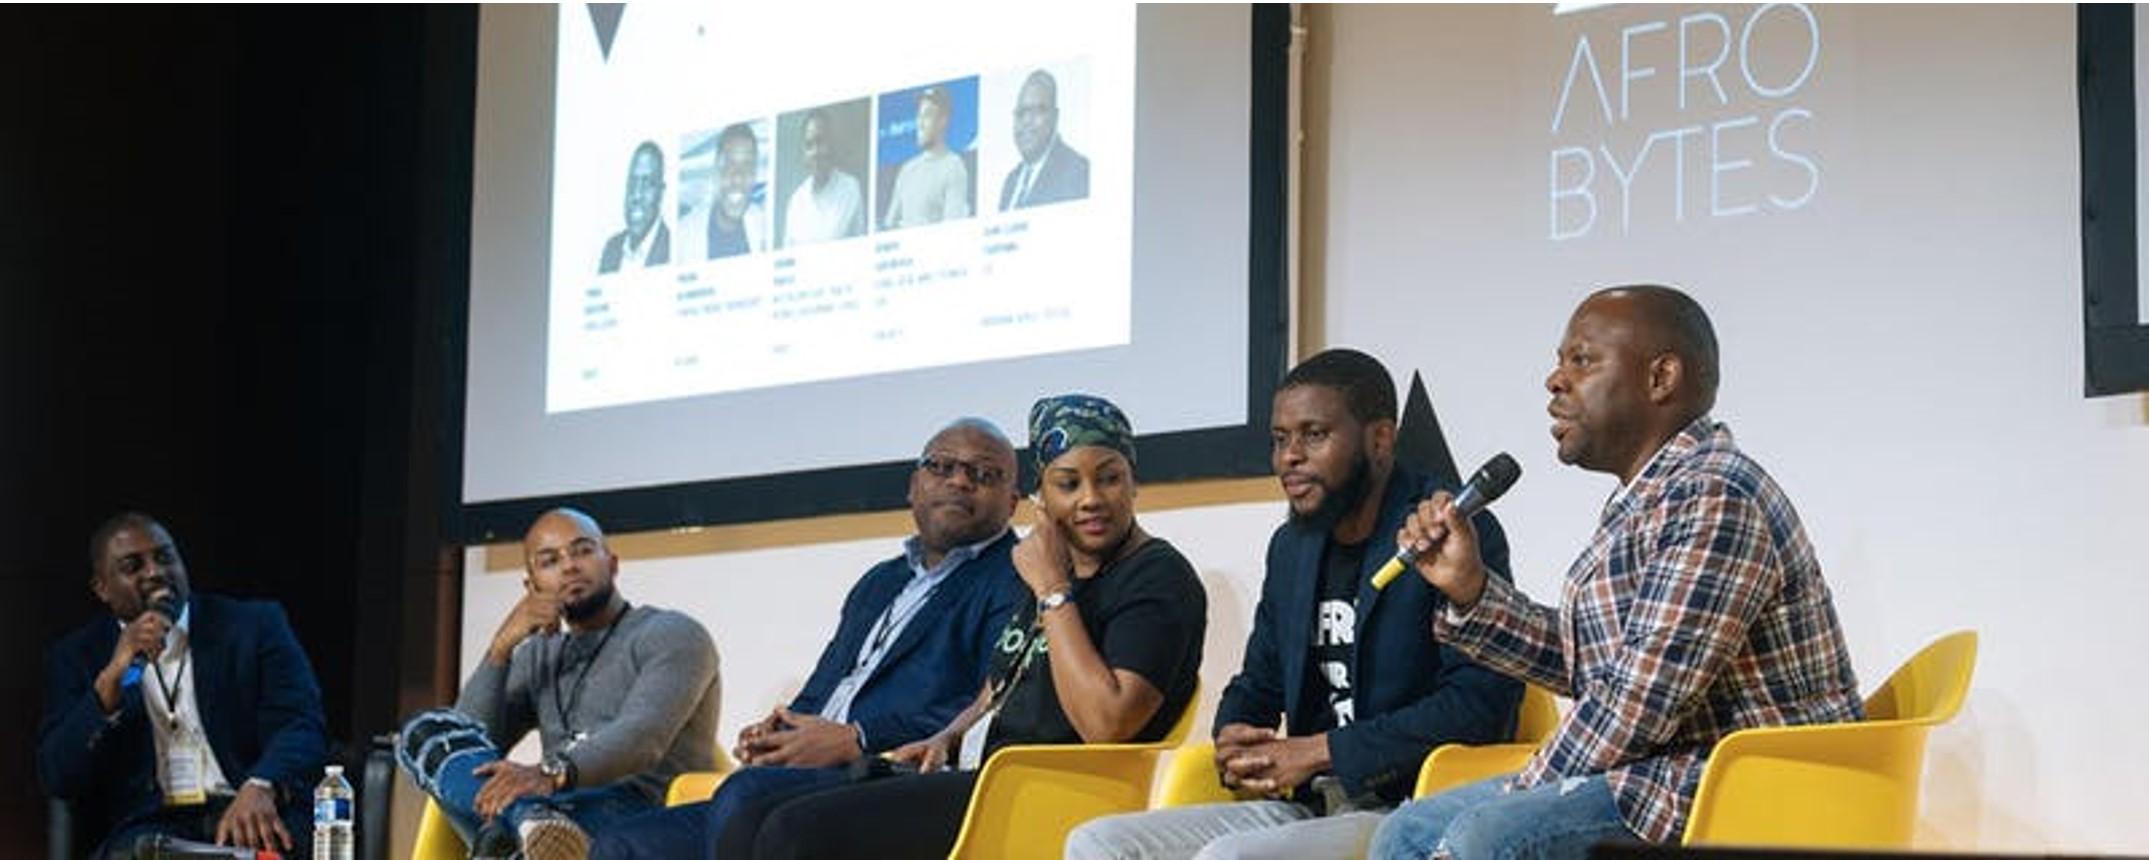 Afrobytes - Afrobytes London Movemeback African event cover image